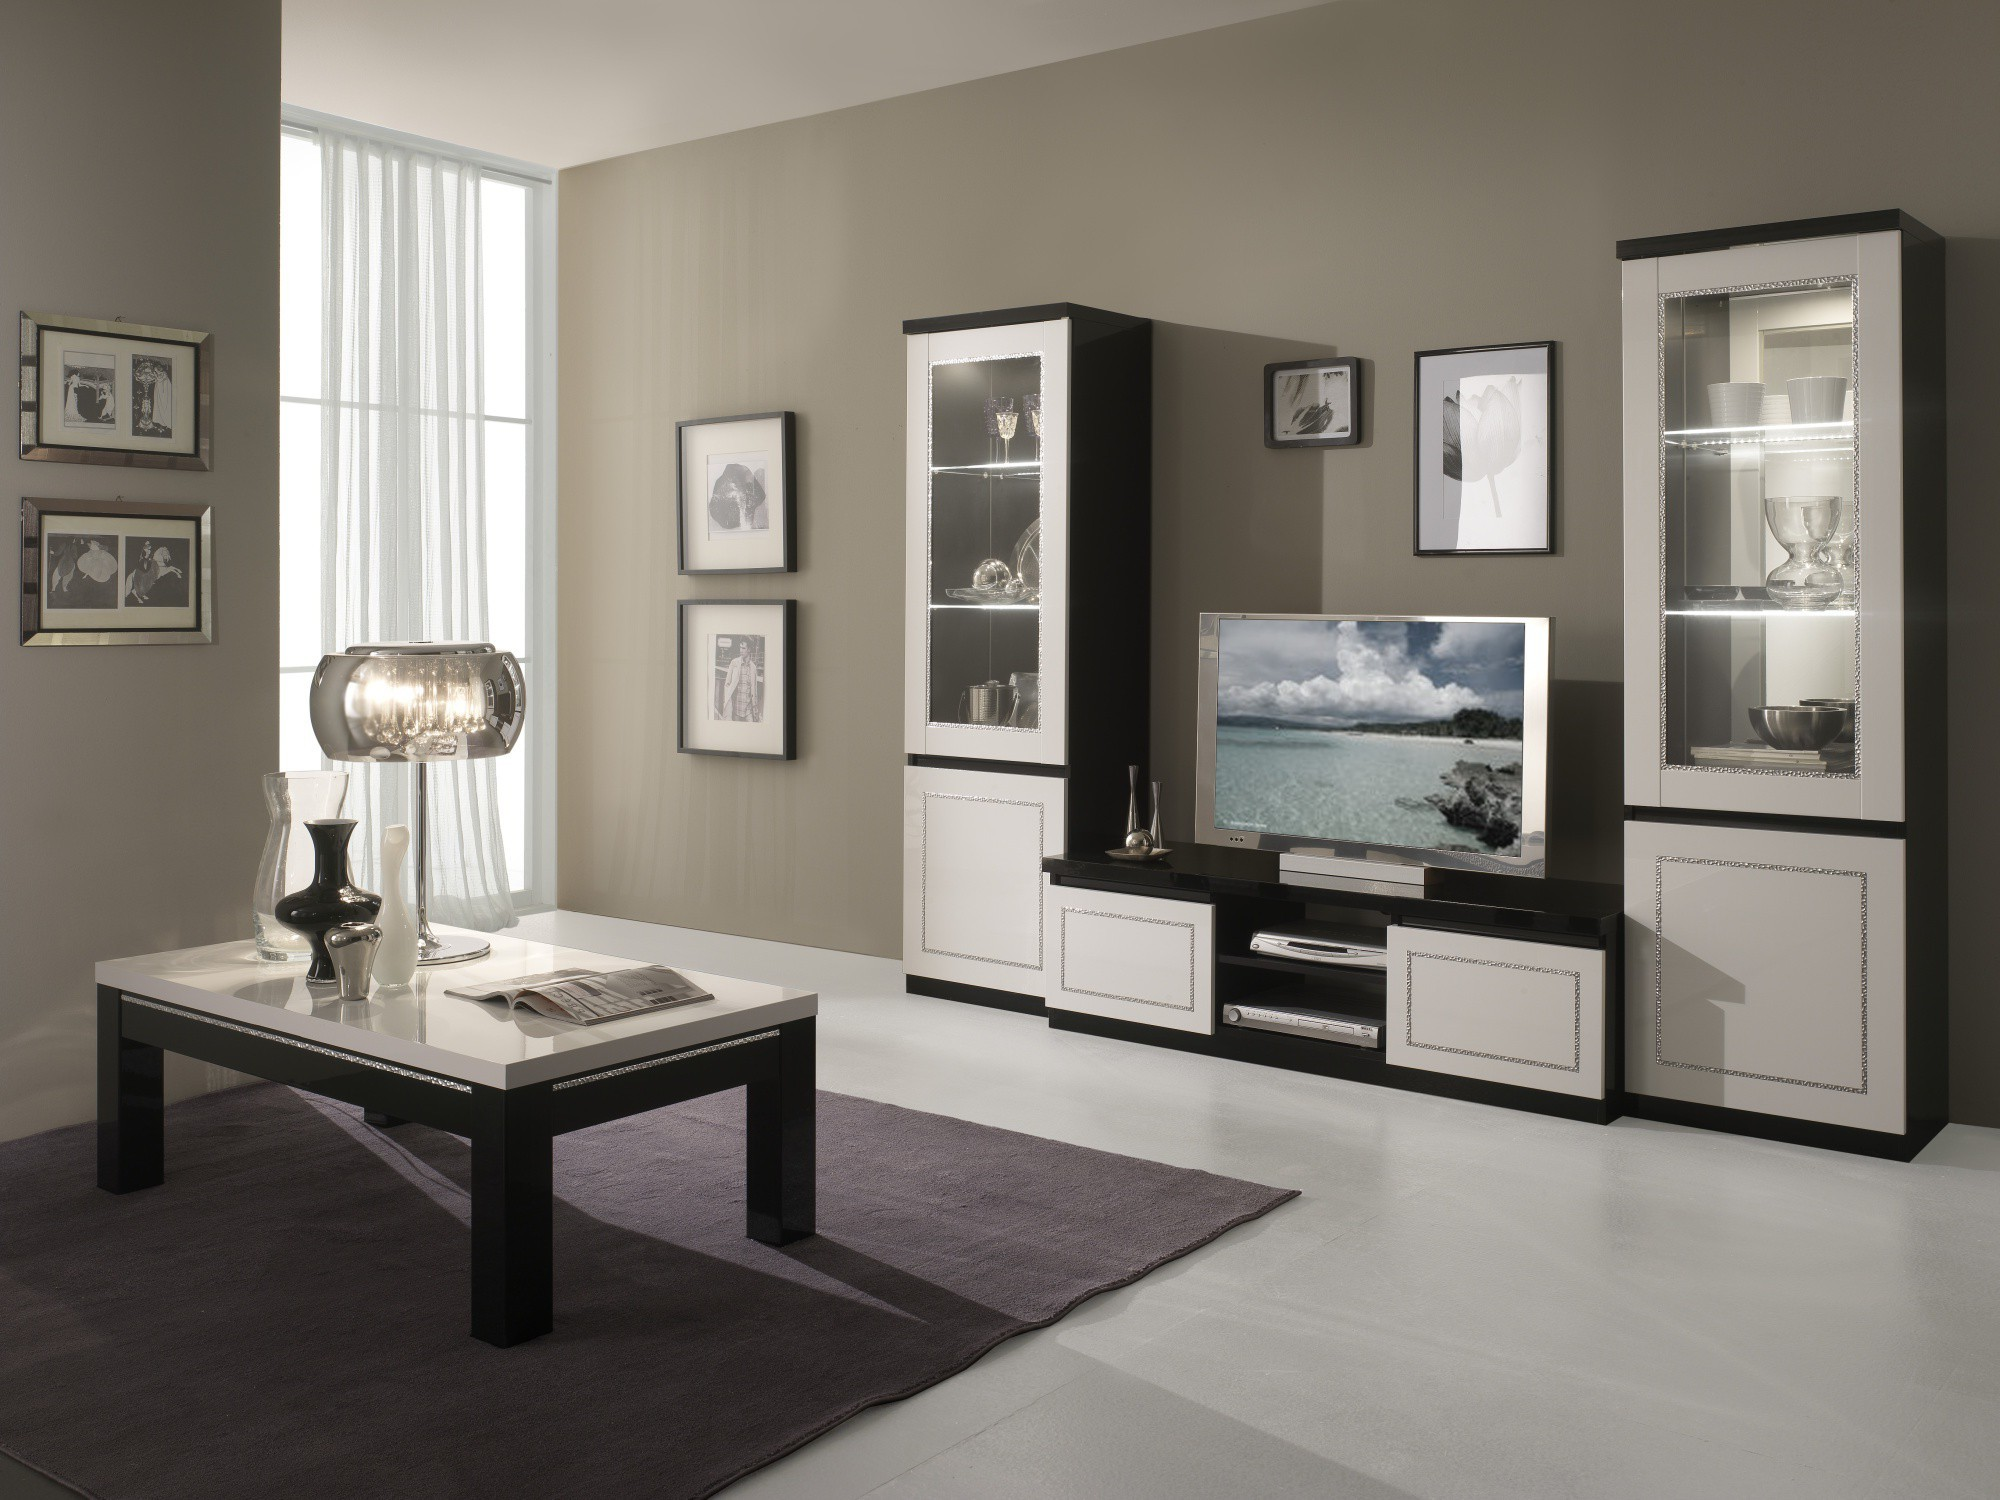 armoire moderne pour salon armoire id es de d coration de maison pklqpxvnra. Black Bedroom Furniture Sets. Home Design Ideas